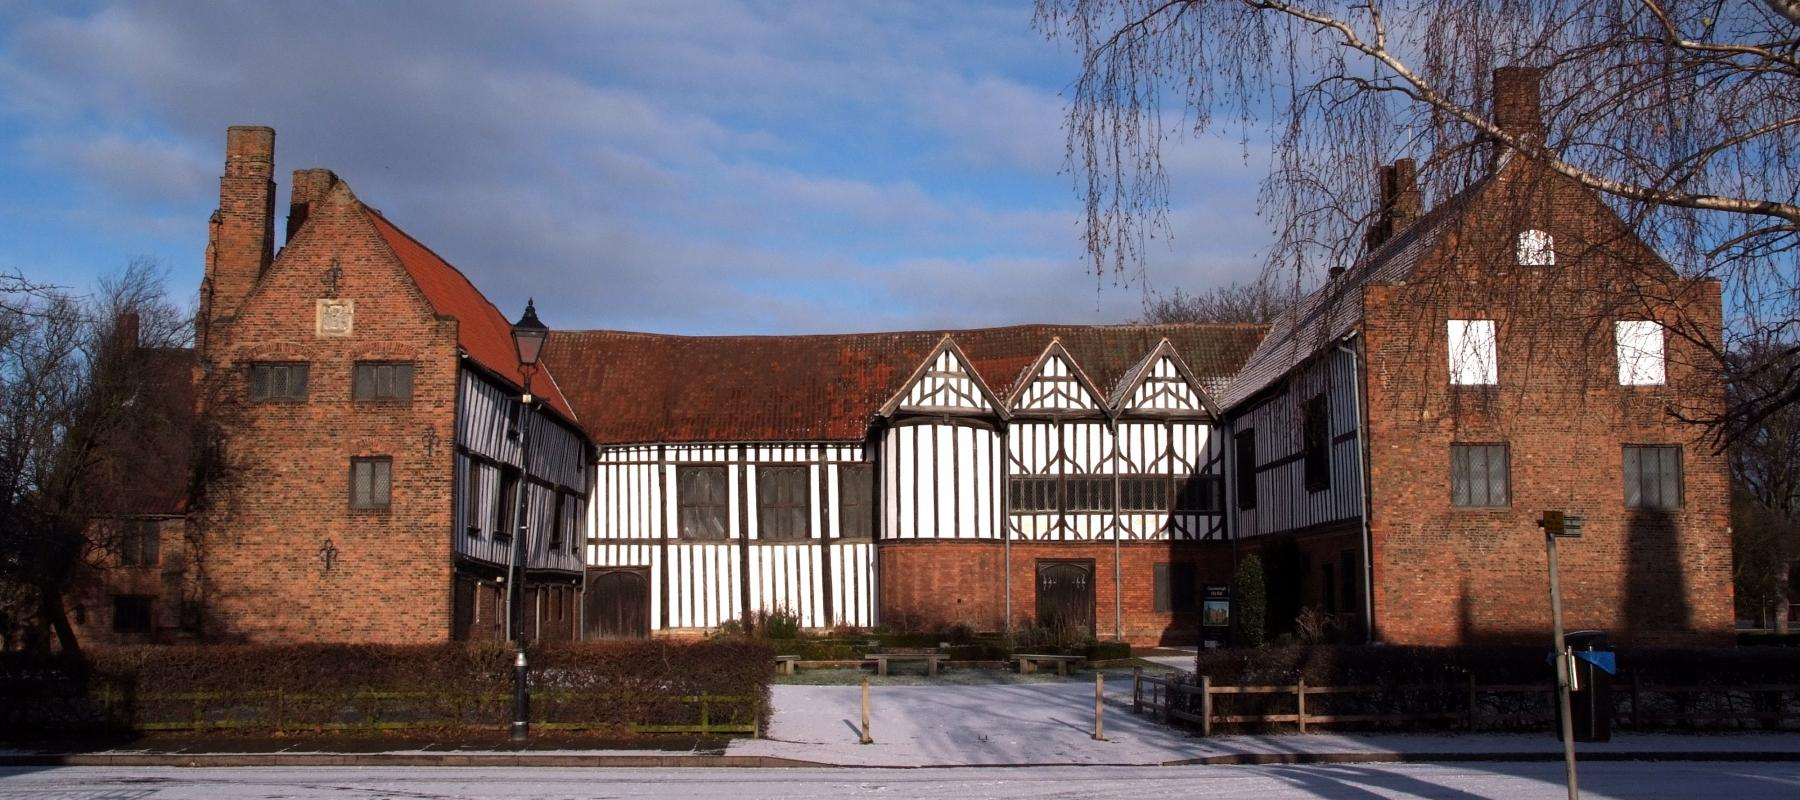 15th century Gainsborough Old Hall can be reached by the Pilgrim Line, East Midlands Trains.